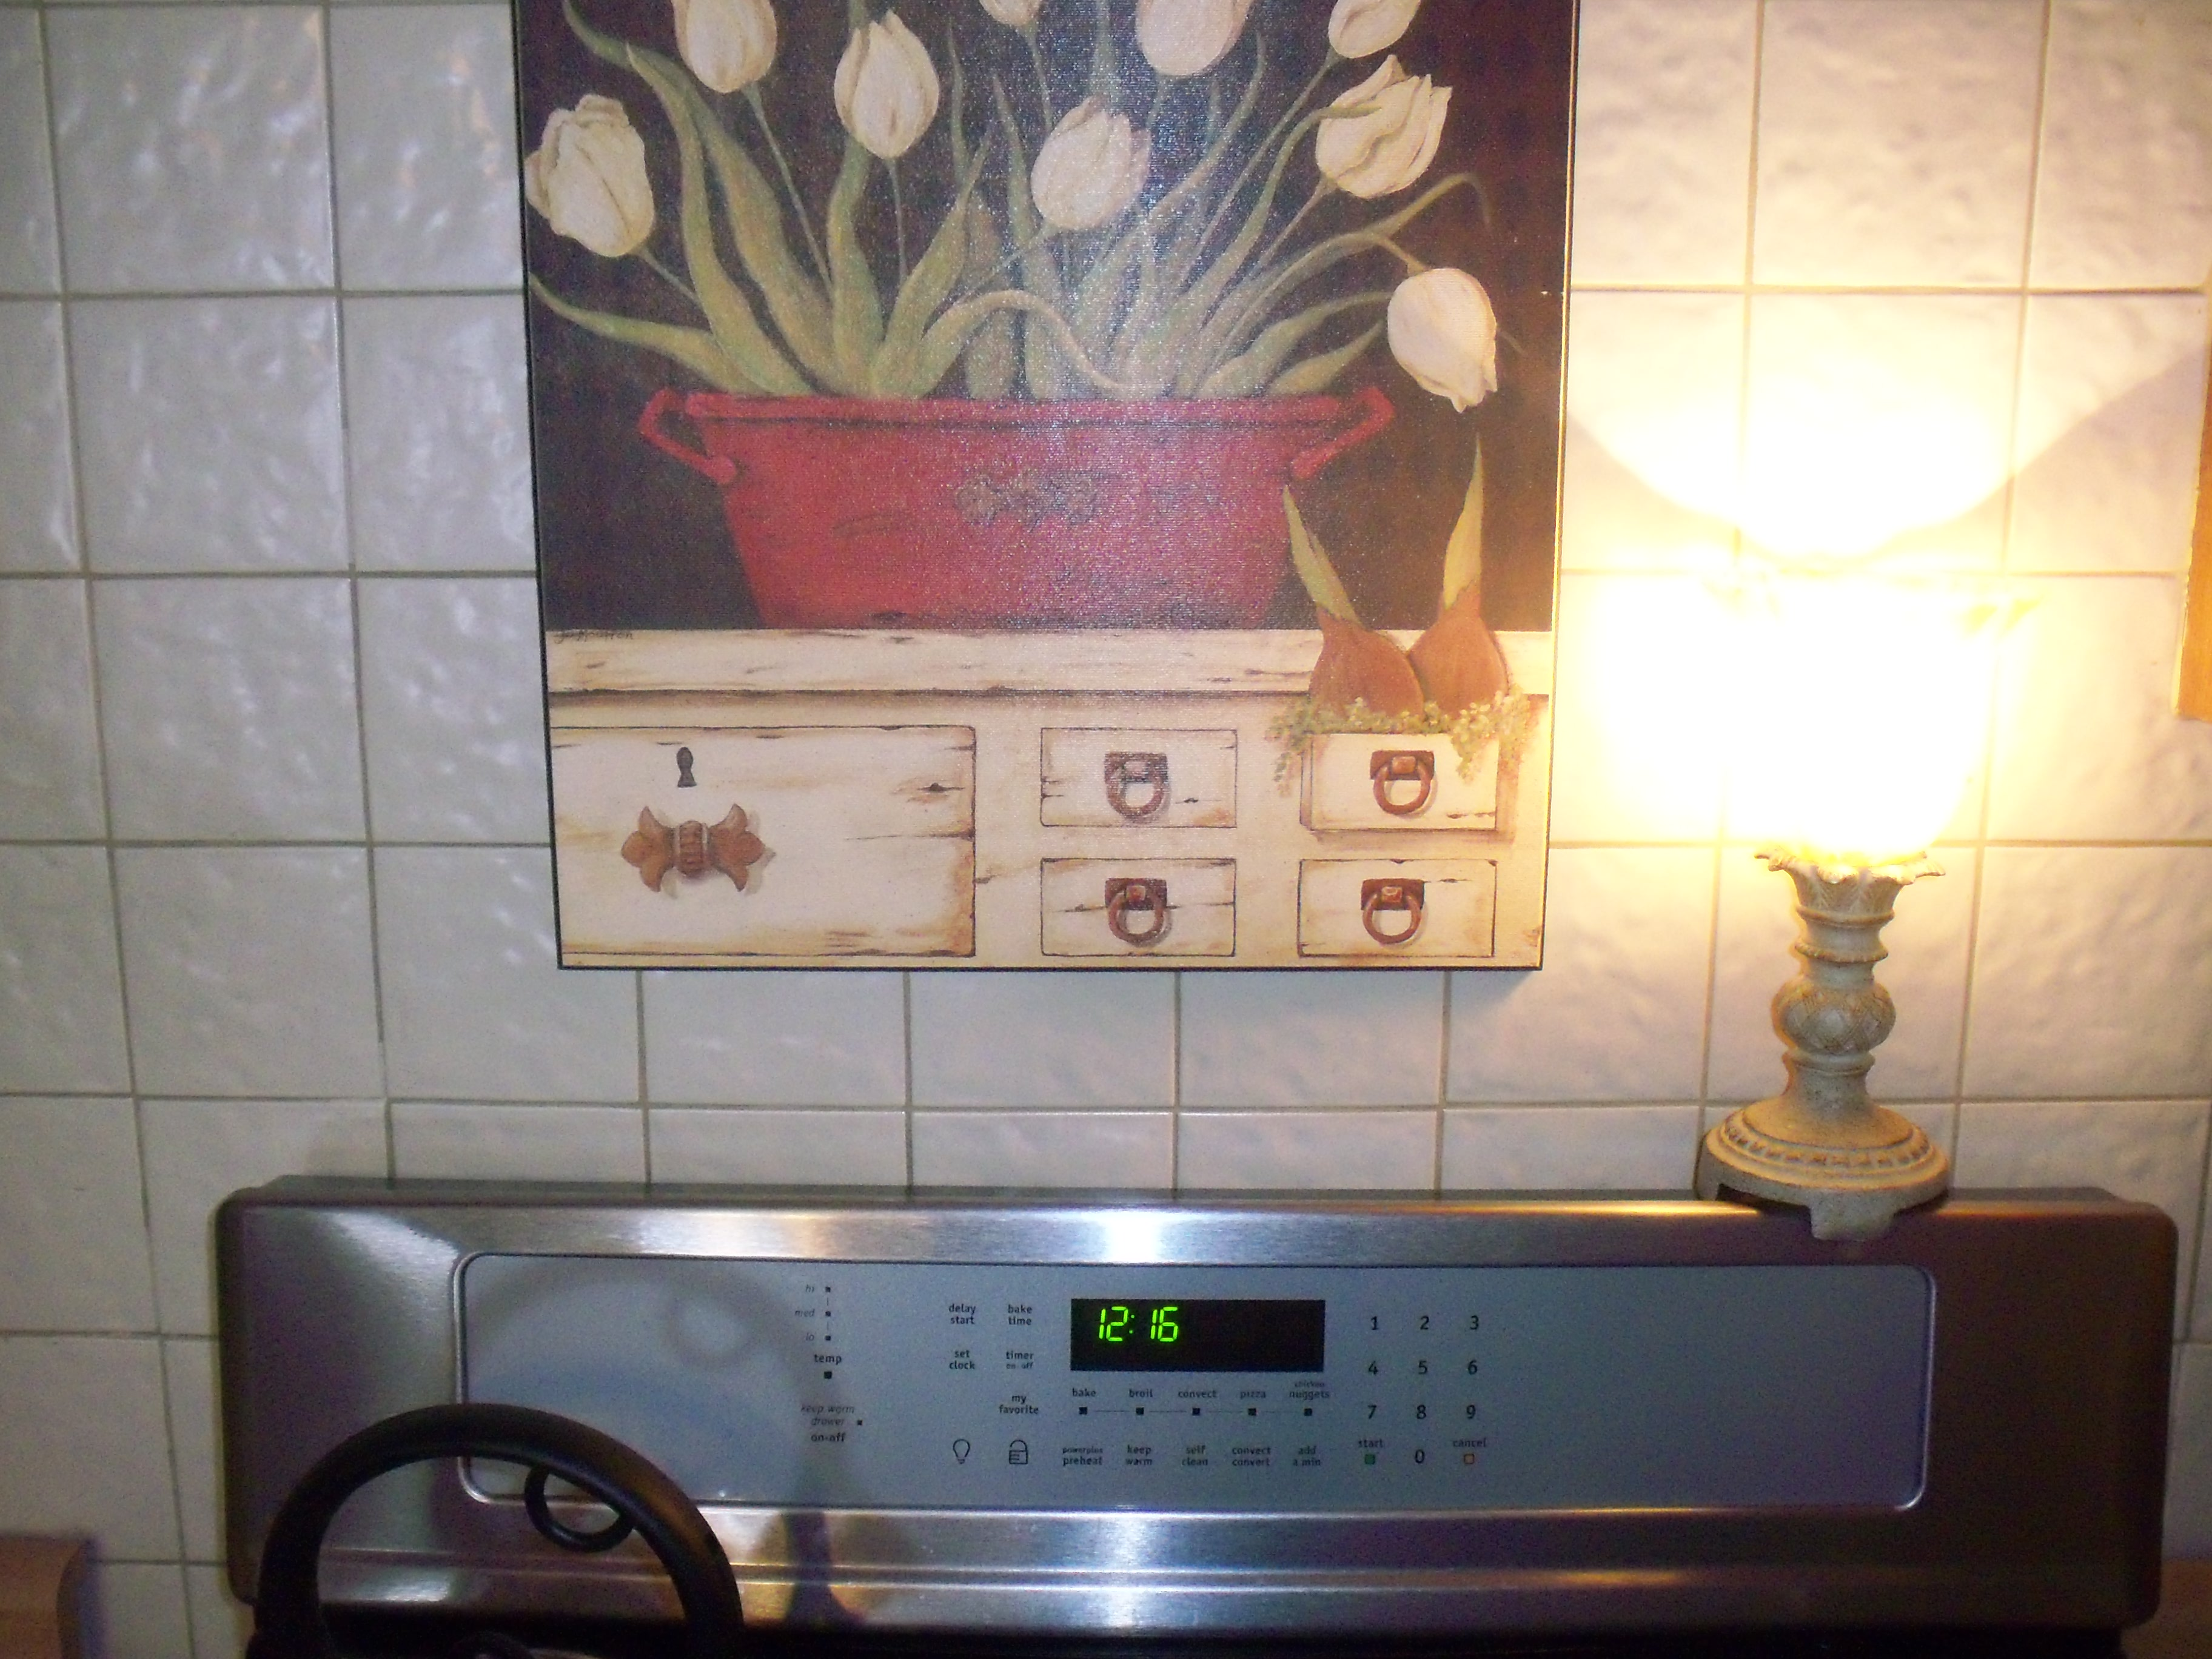 Frigidaire-over-the-range-microwave-should-be-here